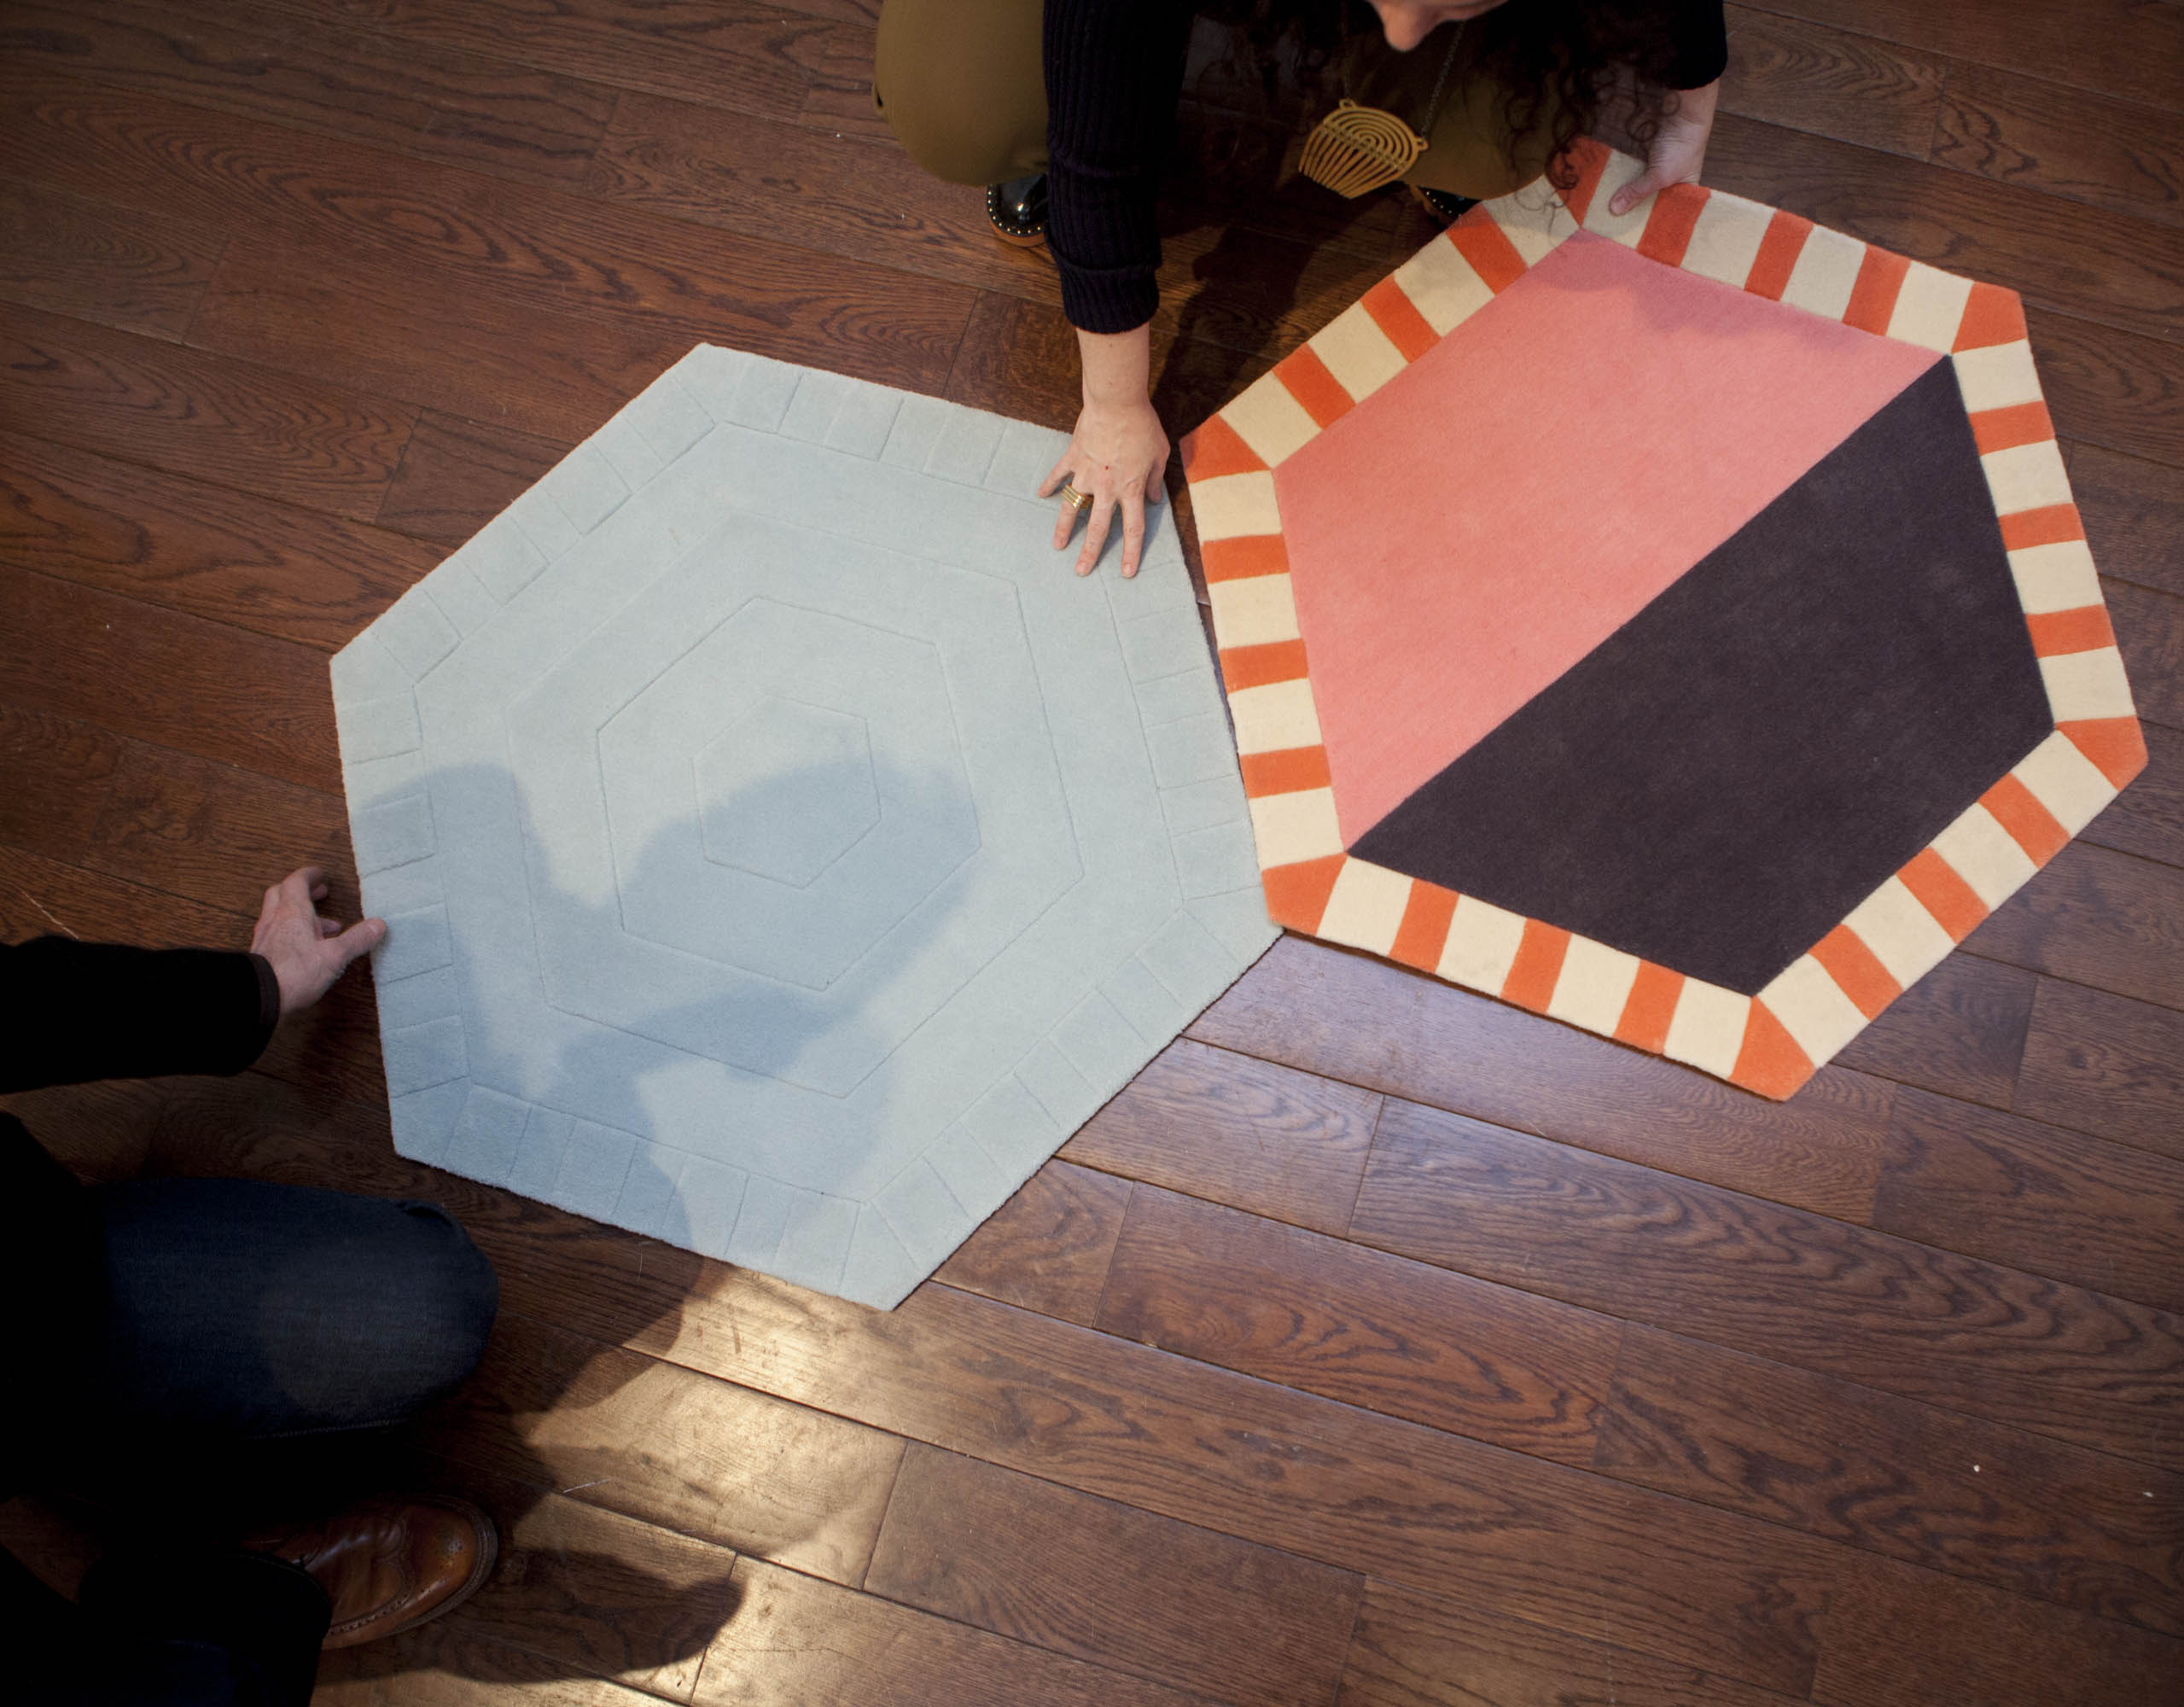 Attendees get a better feel for the modular rugs of the Kinder Ground series.